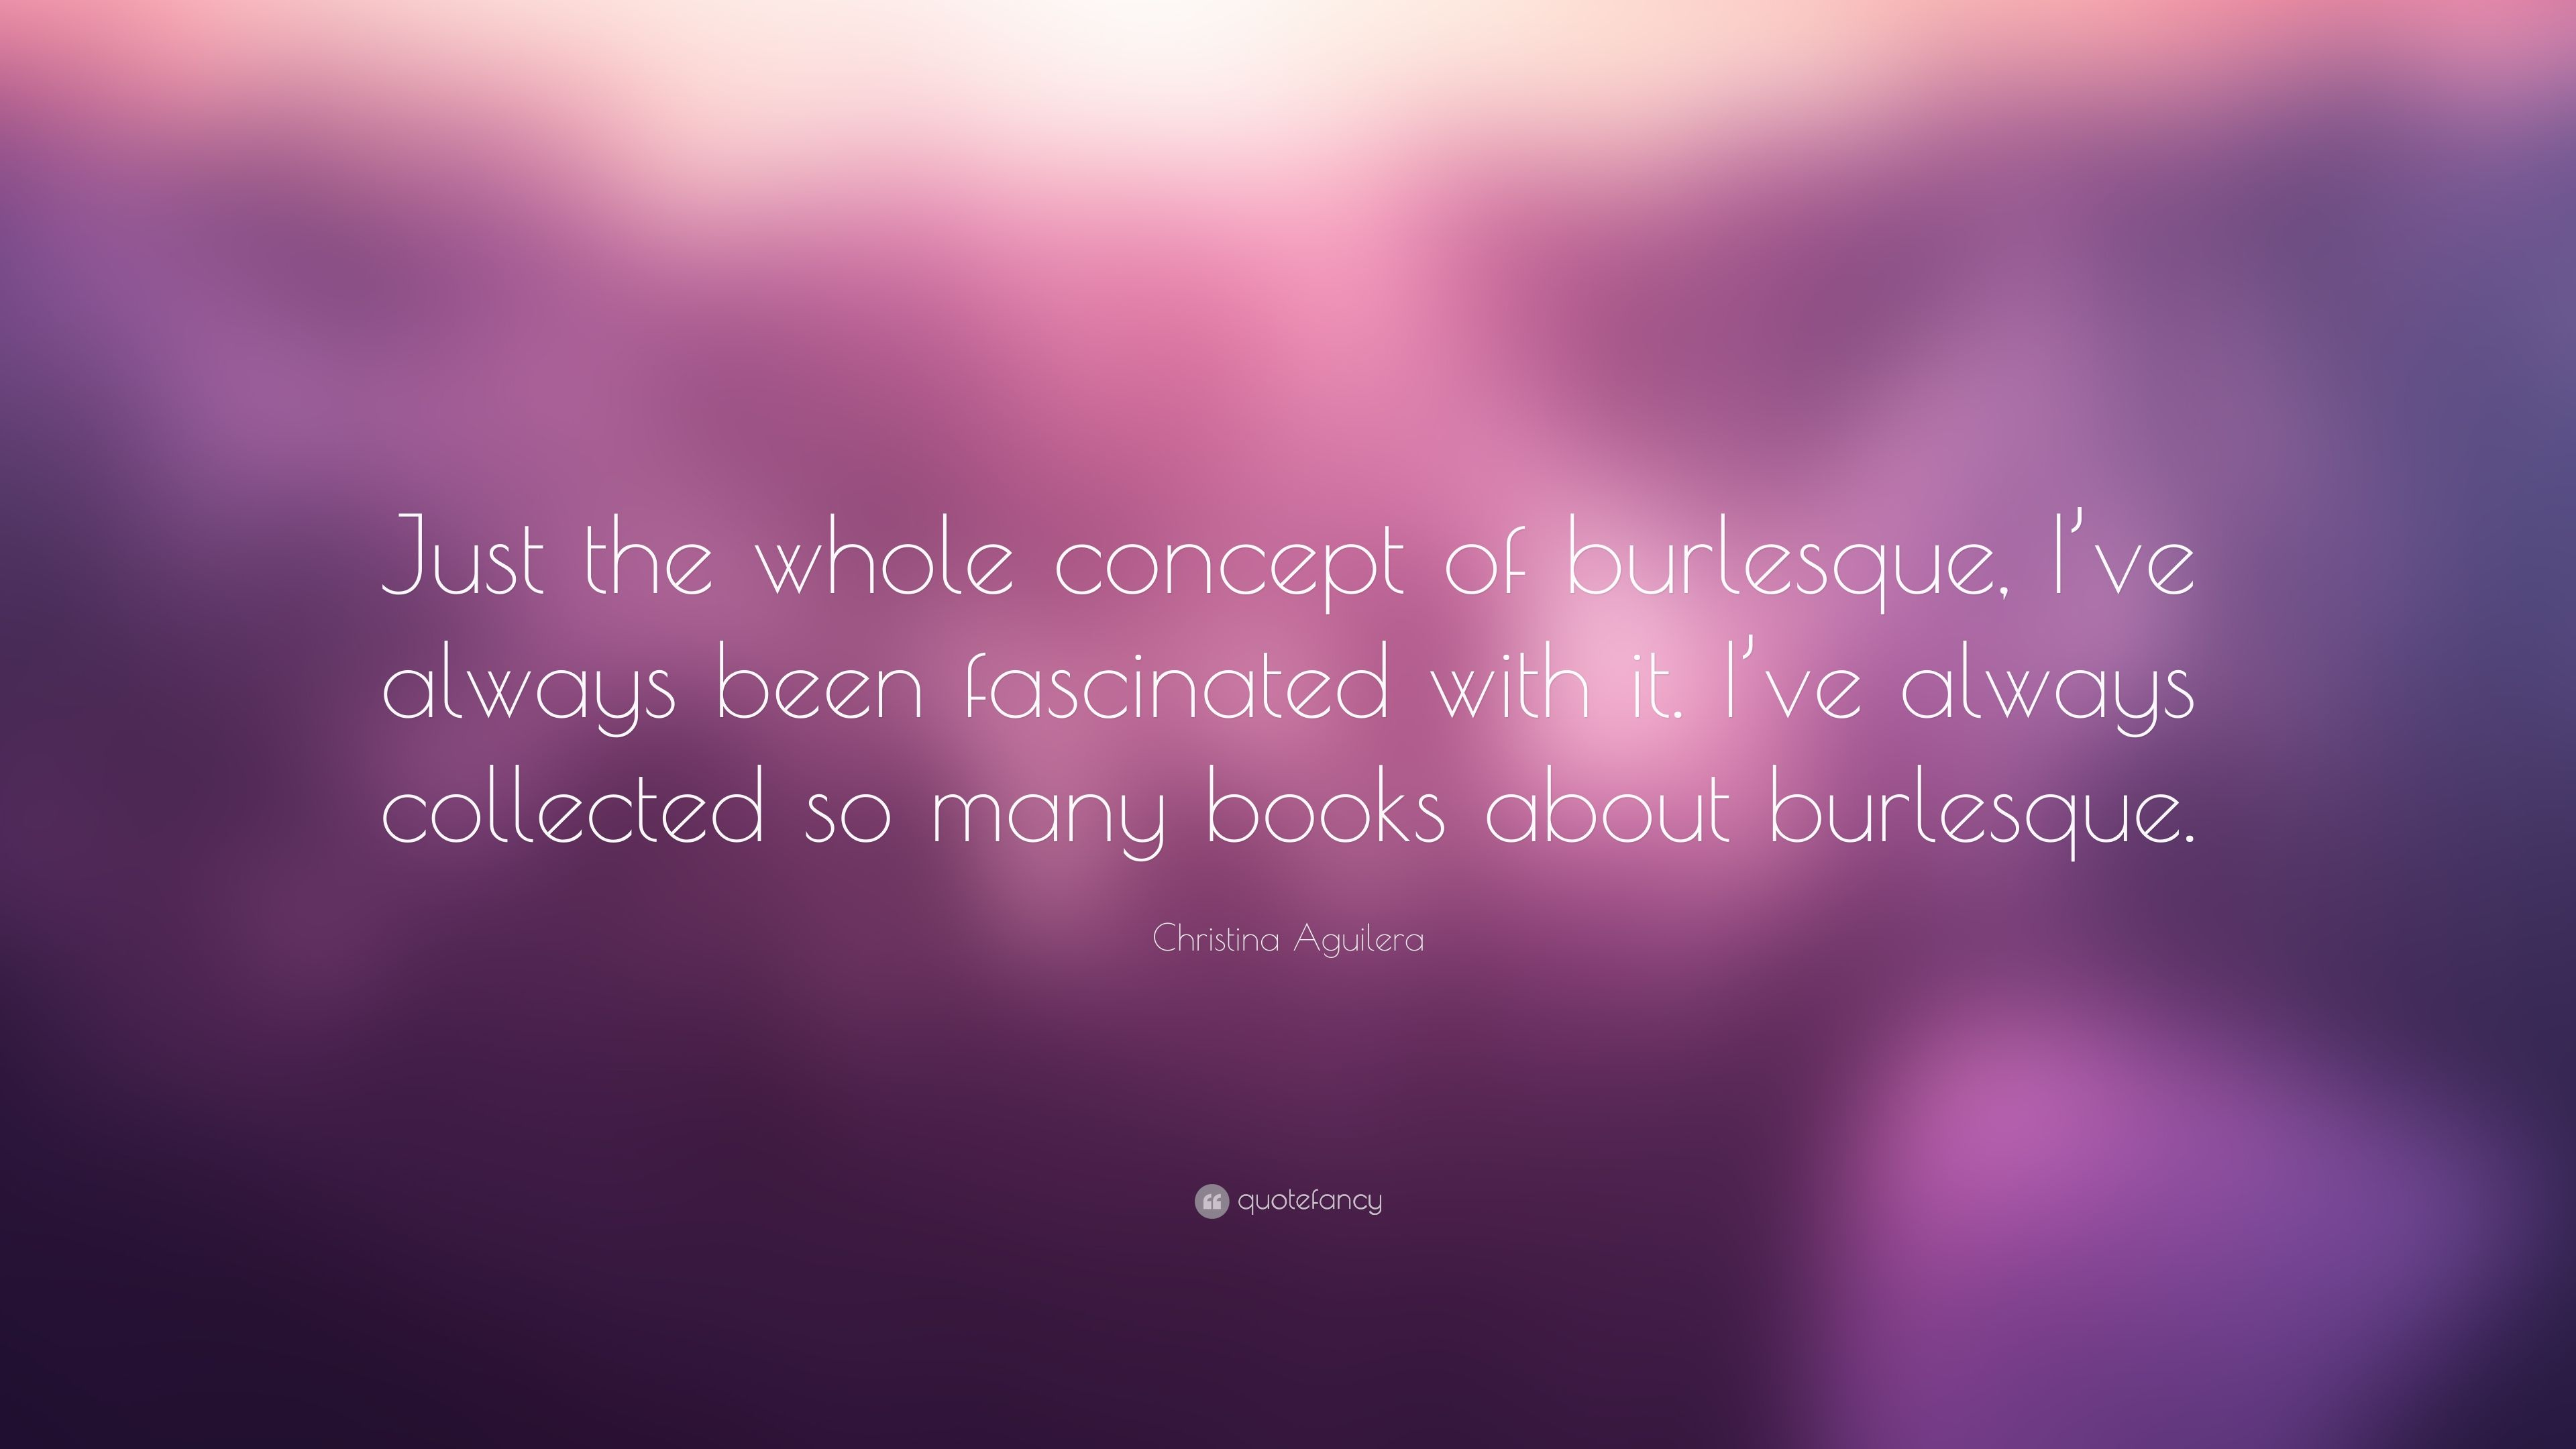 Christina Aguilera Quote Just The Whole Concept Of Burlesque Ive